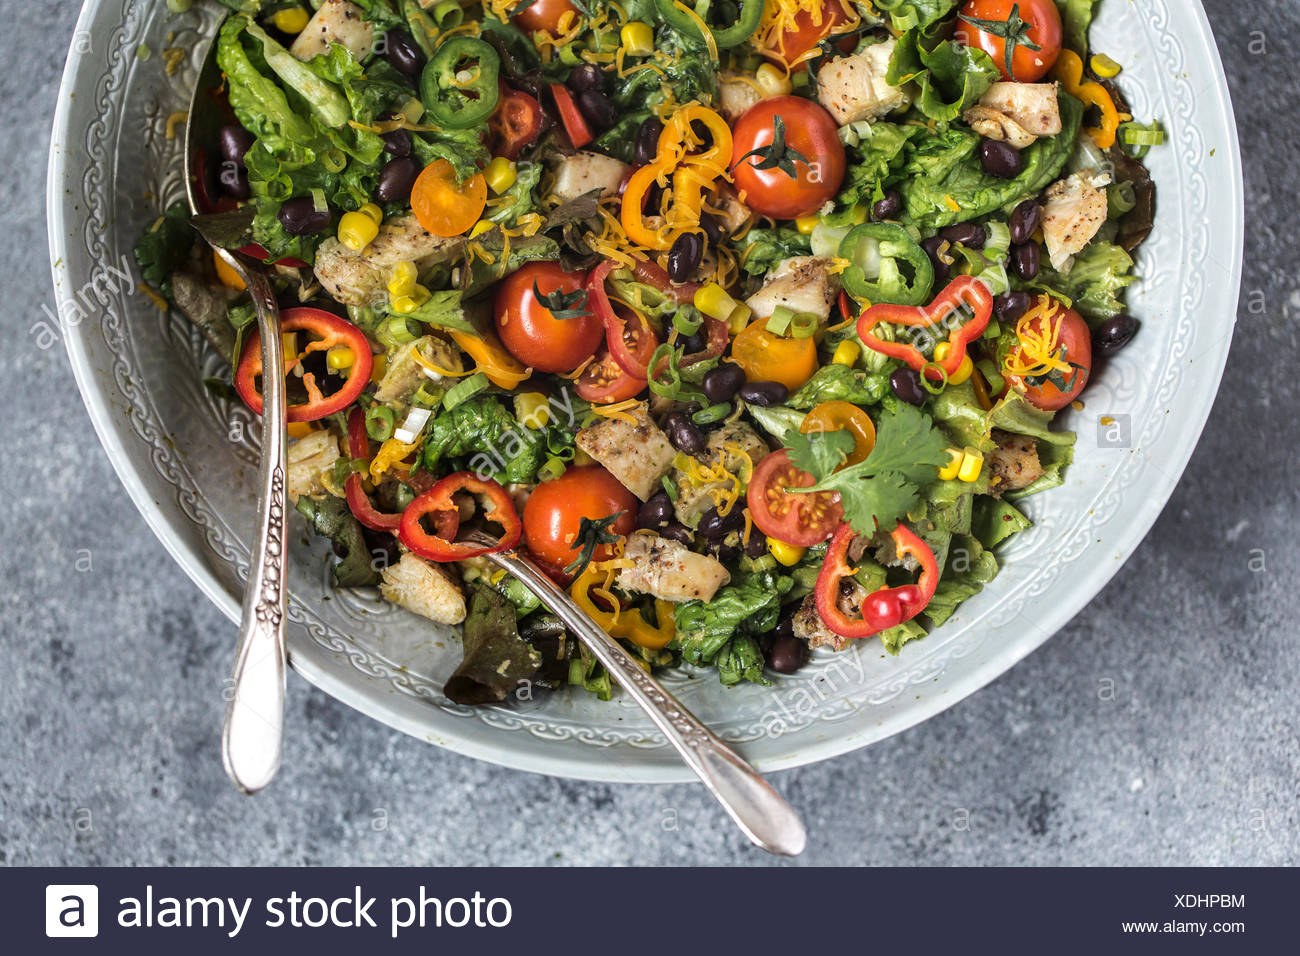 A large bowl of Southwestern Chicken Salad with Creamy Avocado Dressing is photographed from the top view. - Stock Image